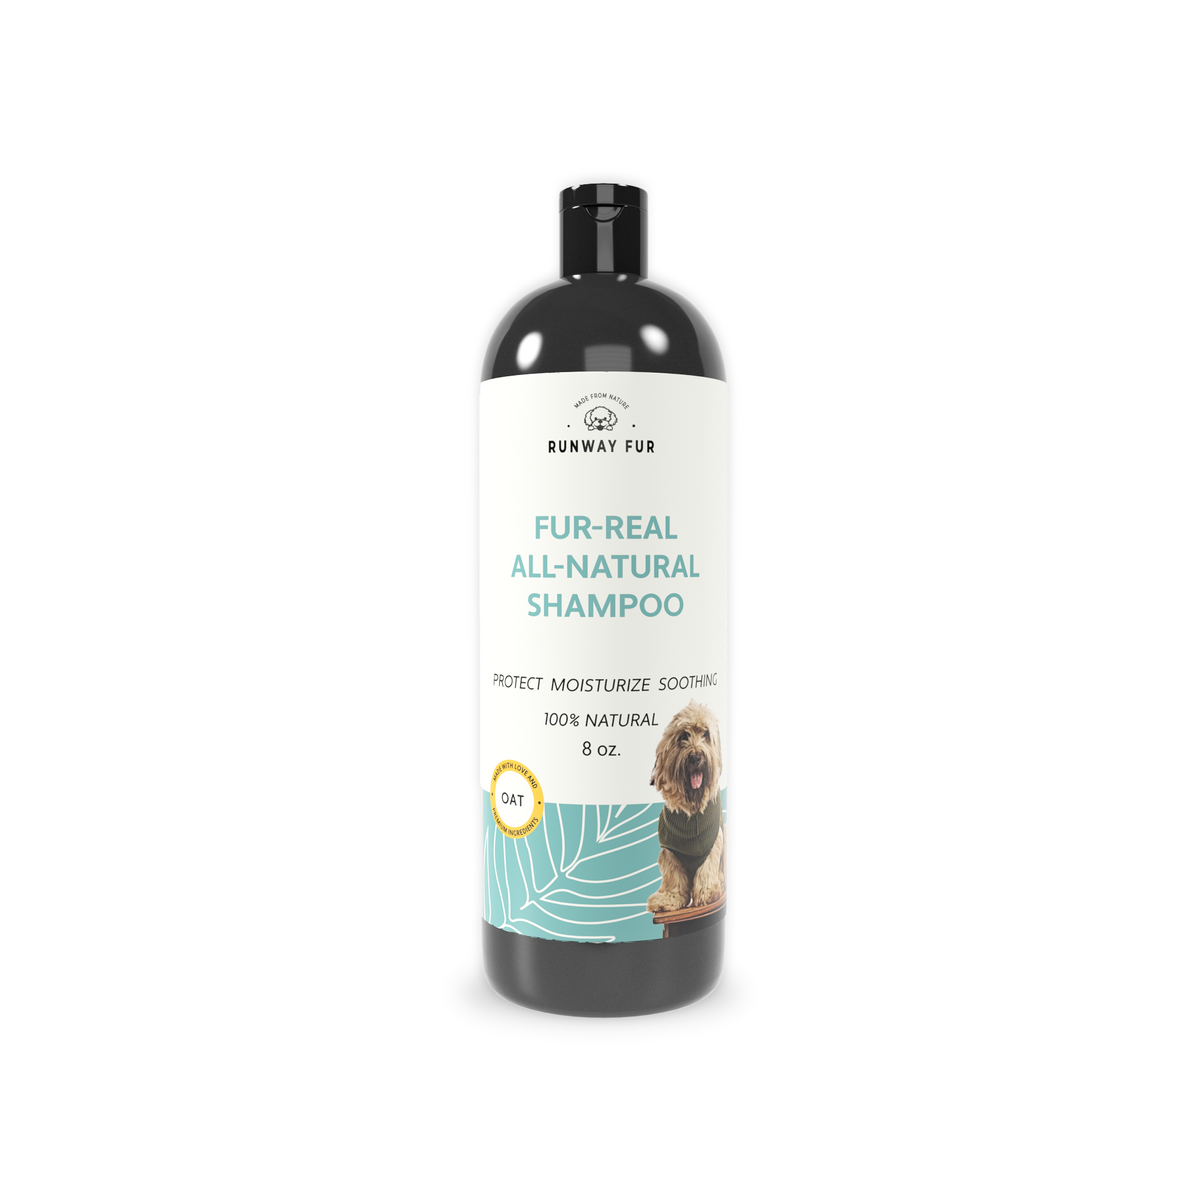 Oat all-natural dog shampoo for itch